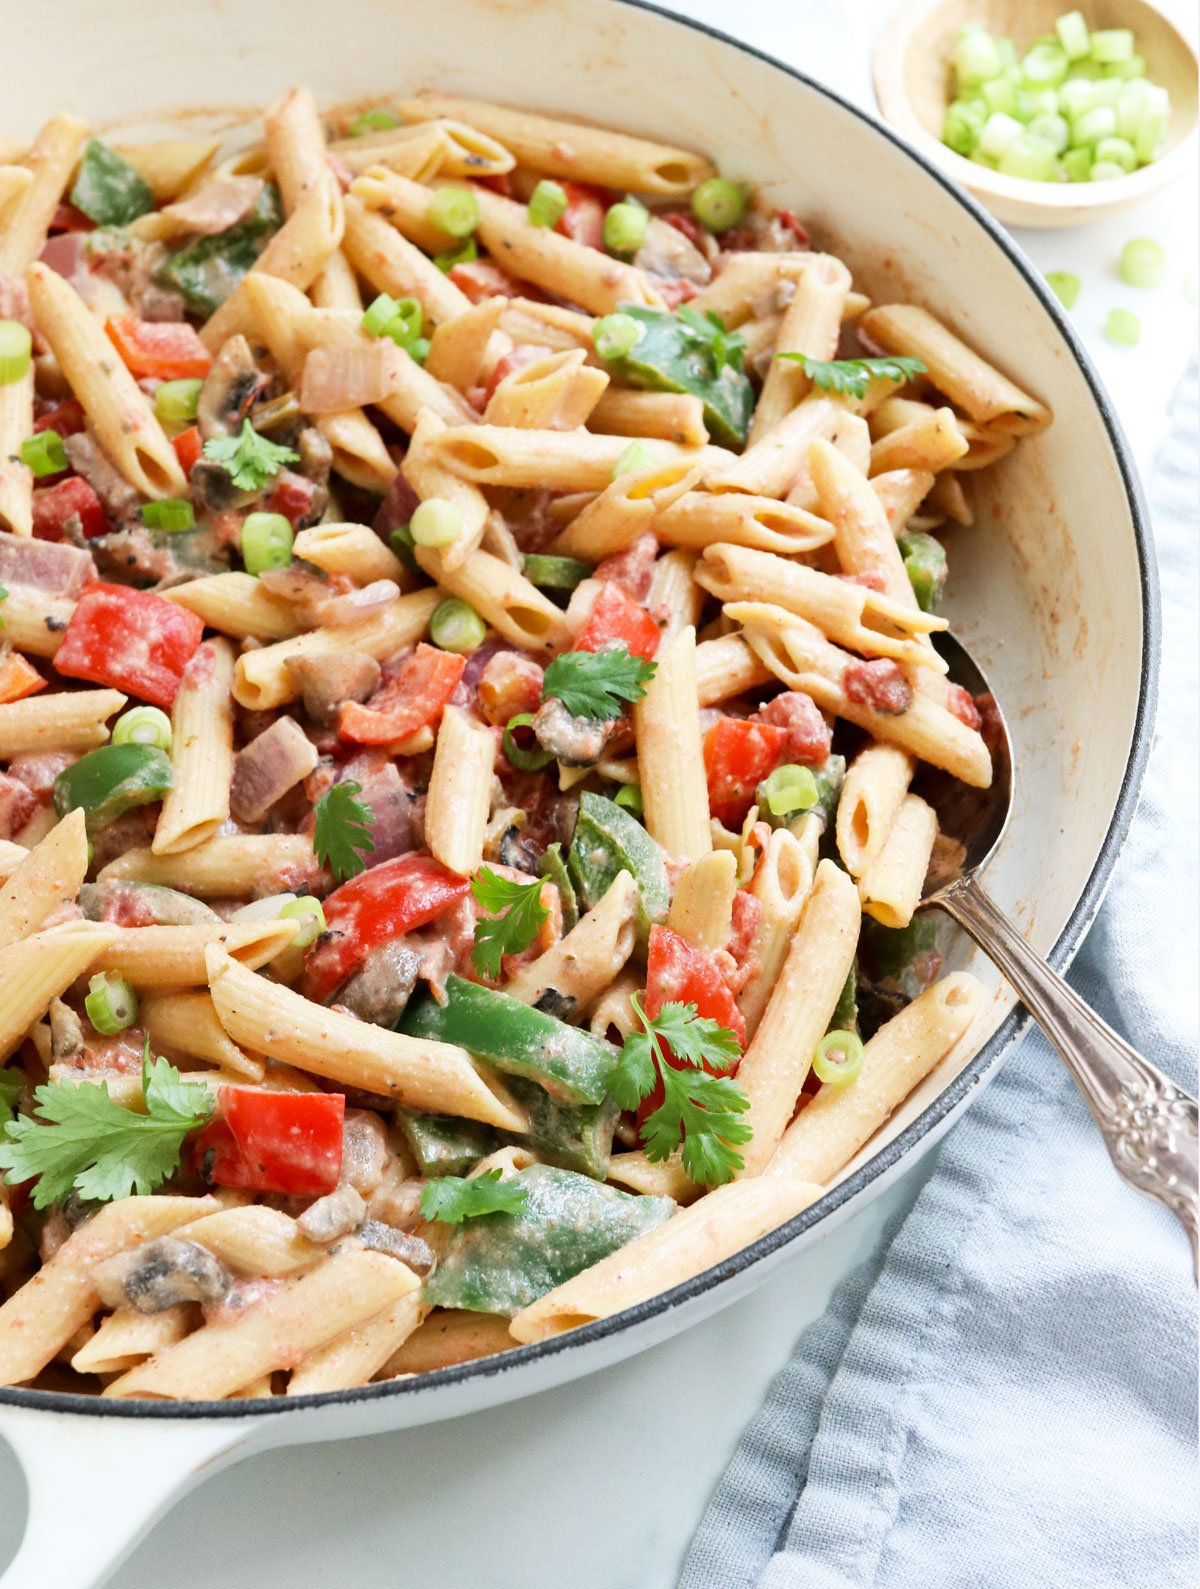 cajun pasta ready to be served from white skillet